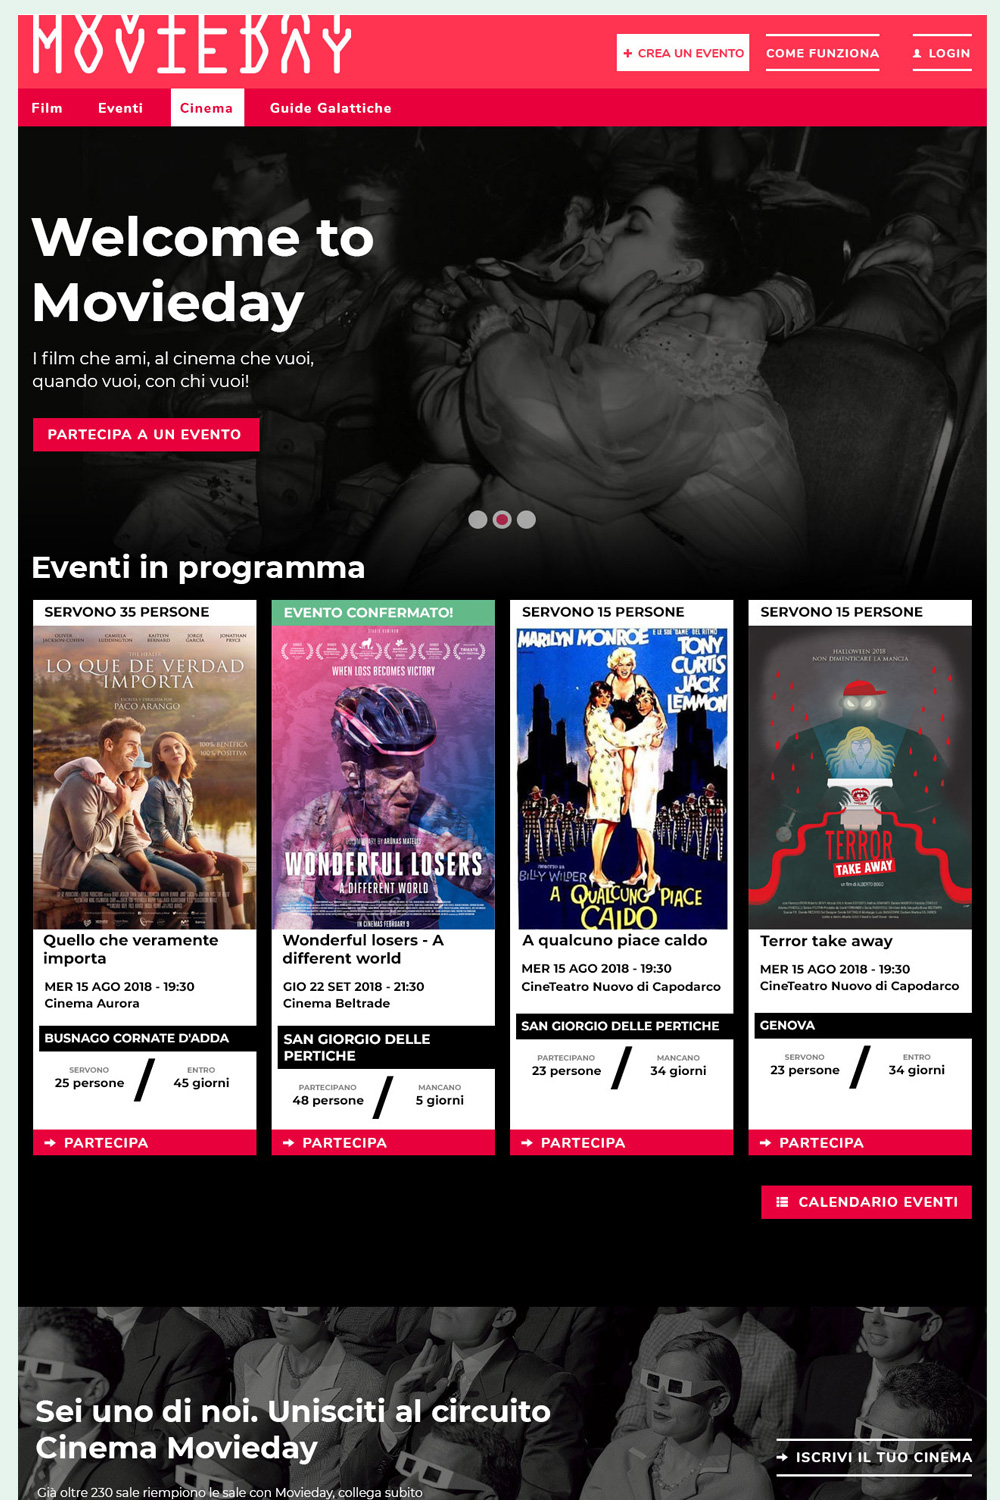 Homepage Movieday - Design by Eleonora Viviani